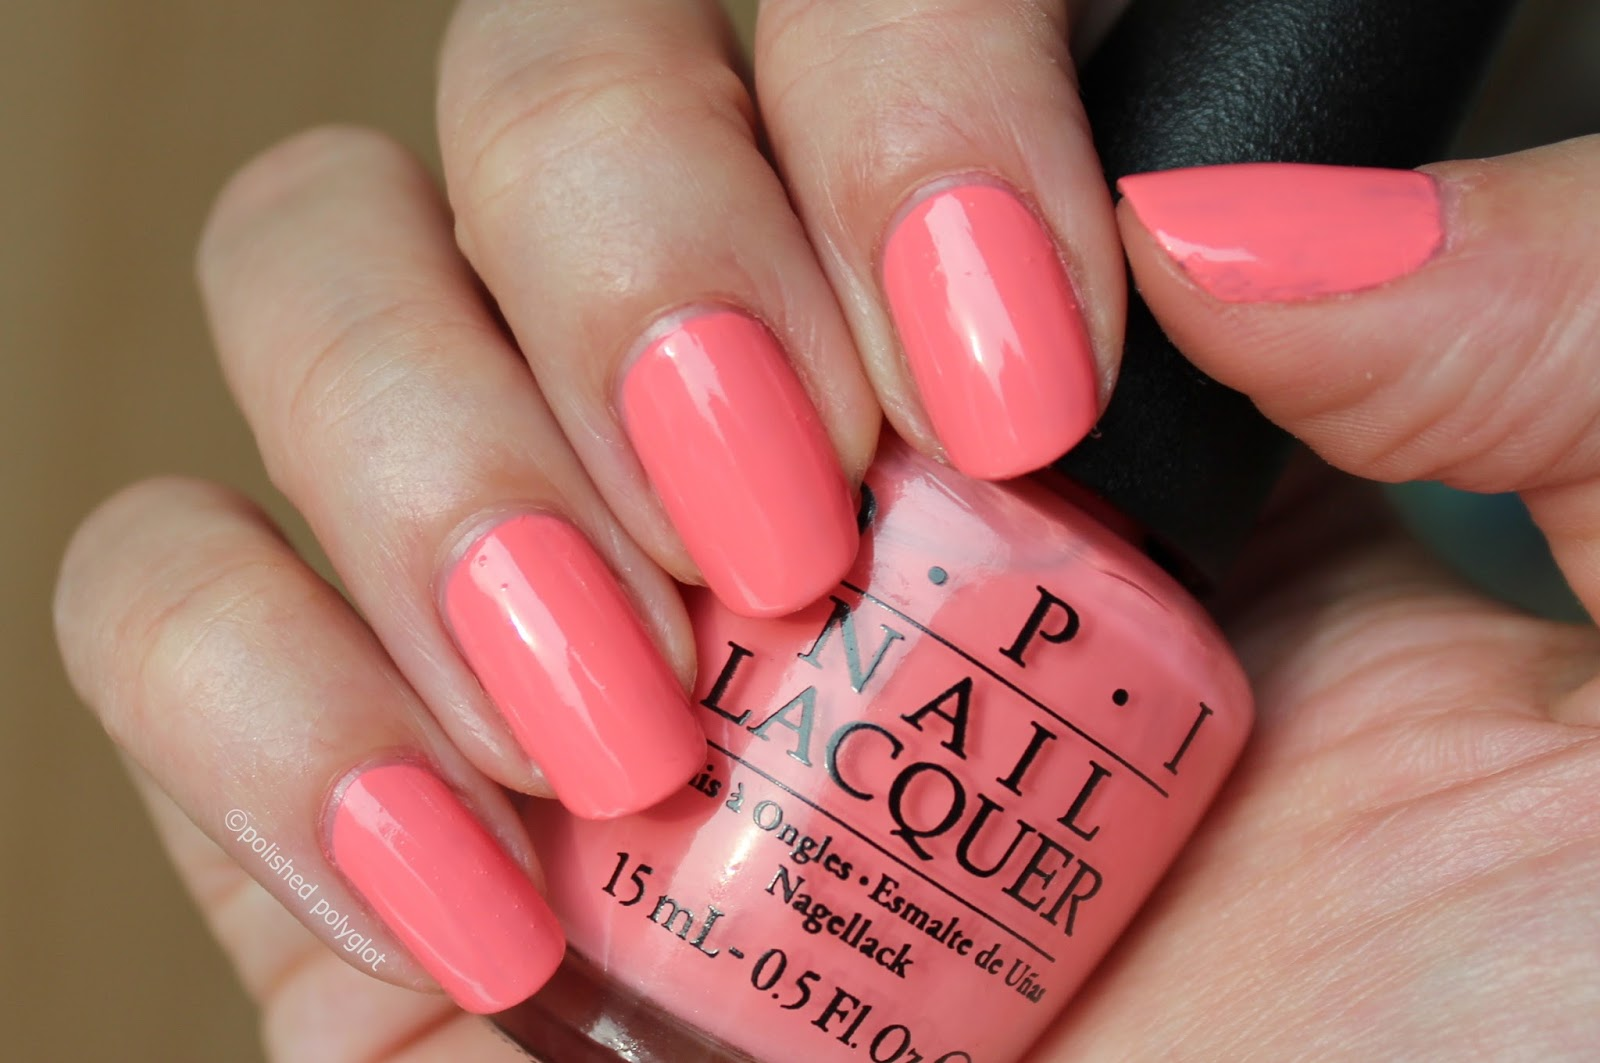 OPI New Orleans Collection Swatches & Review (II) / Polished Polyglot